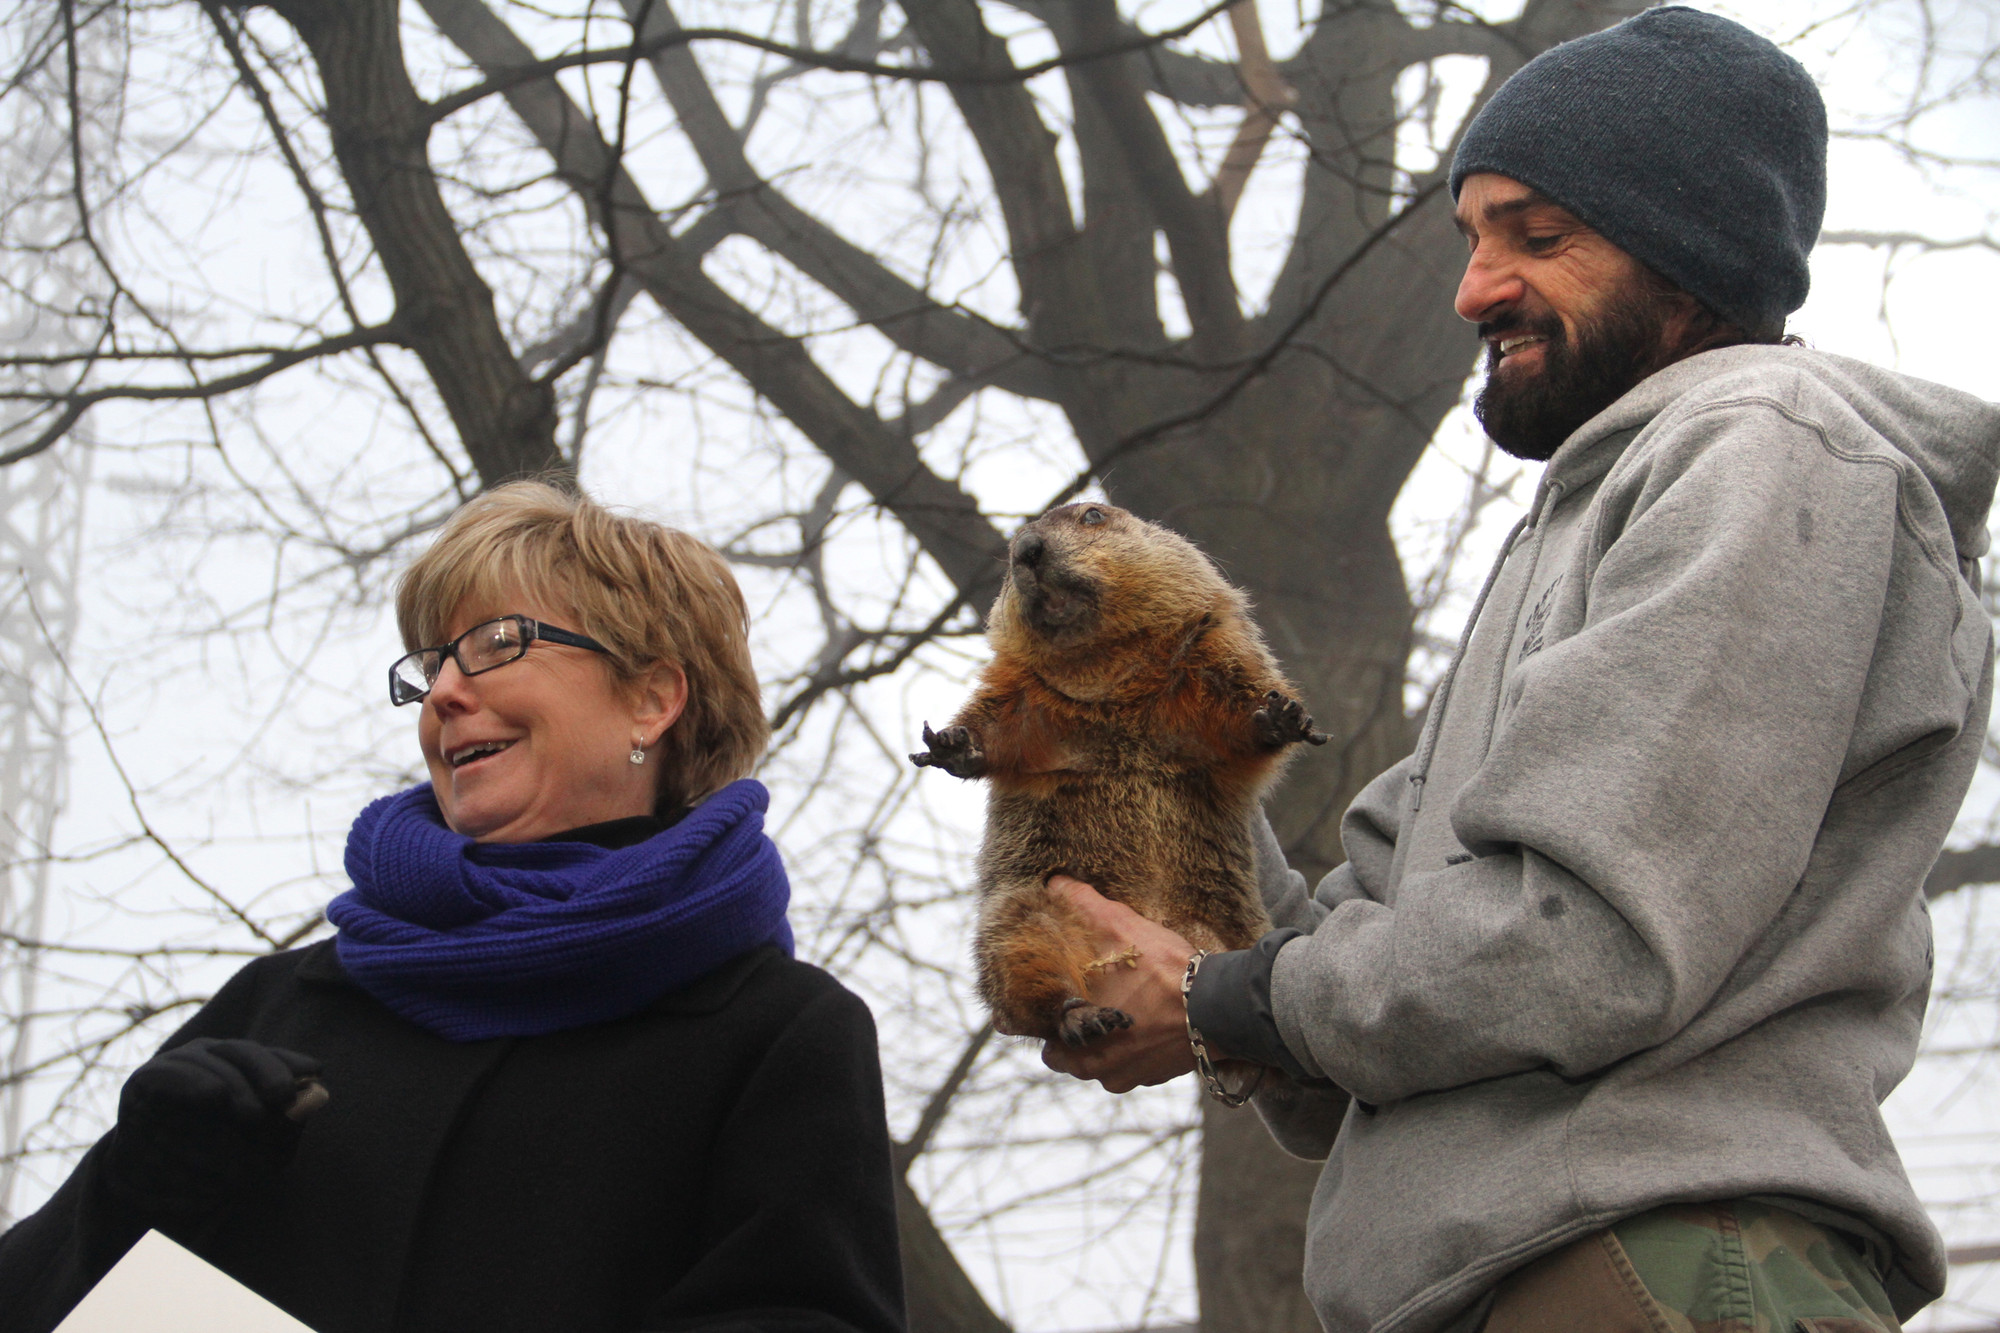 Mayor Patricia McDonald conferred with Malverne Mel, the village's great prognosticator, alongside his handler, Andre Ricaud, to announce his prediction of an early spring this year.